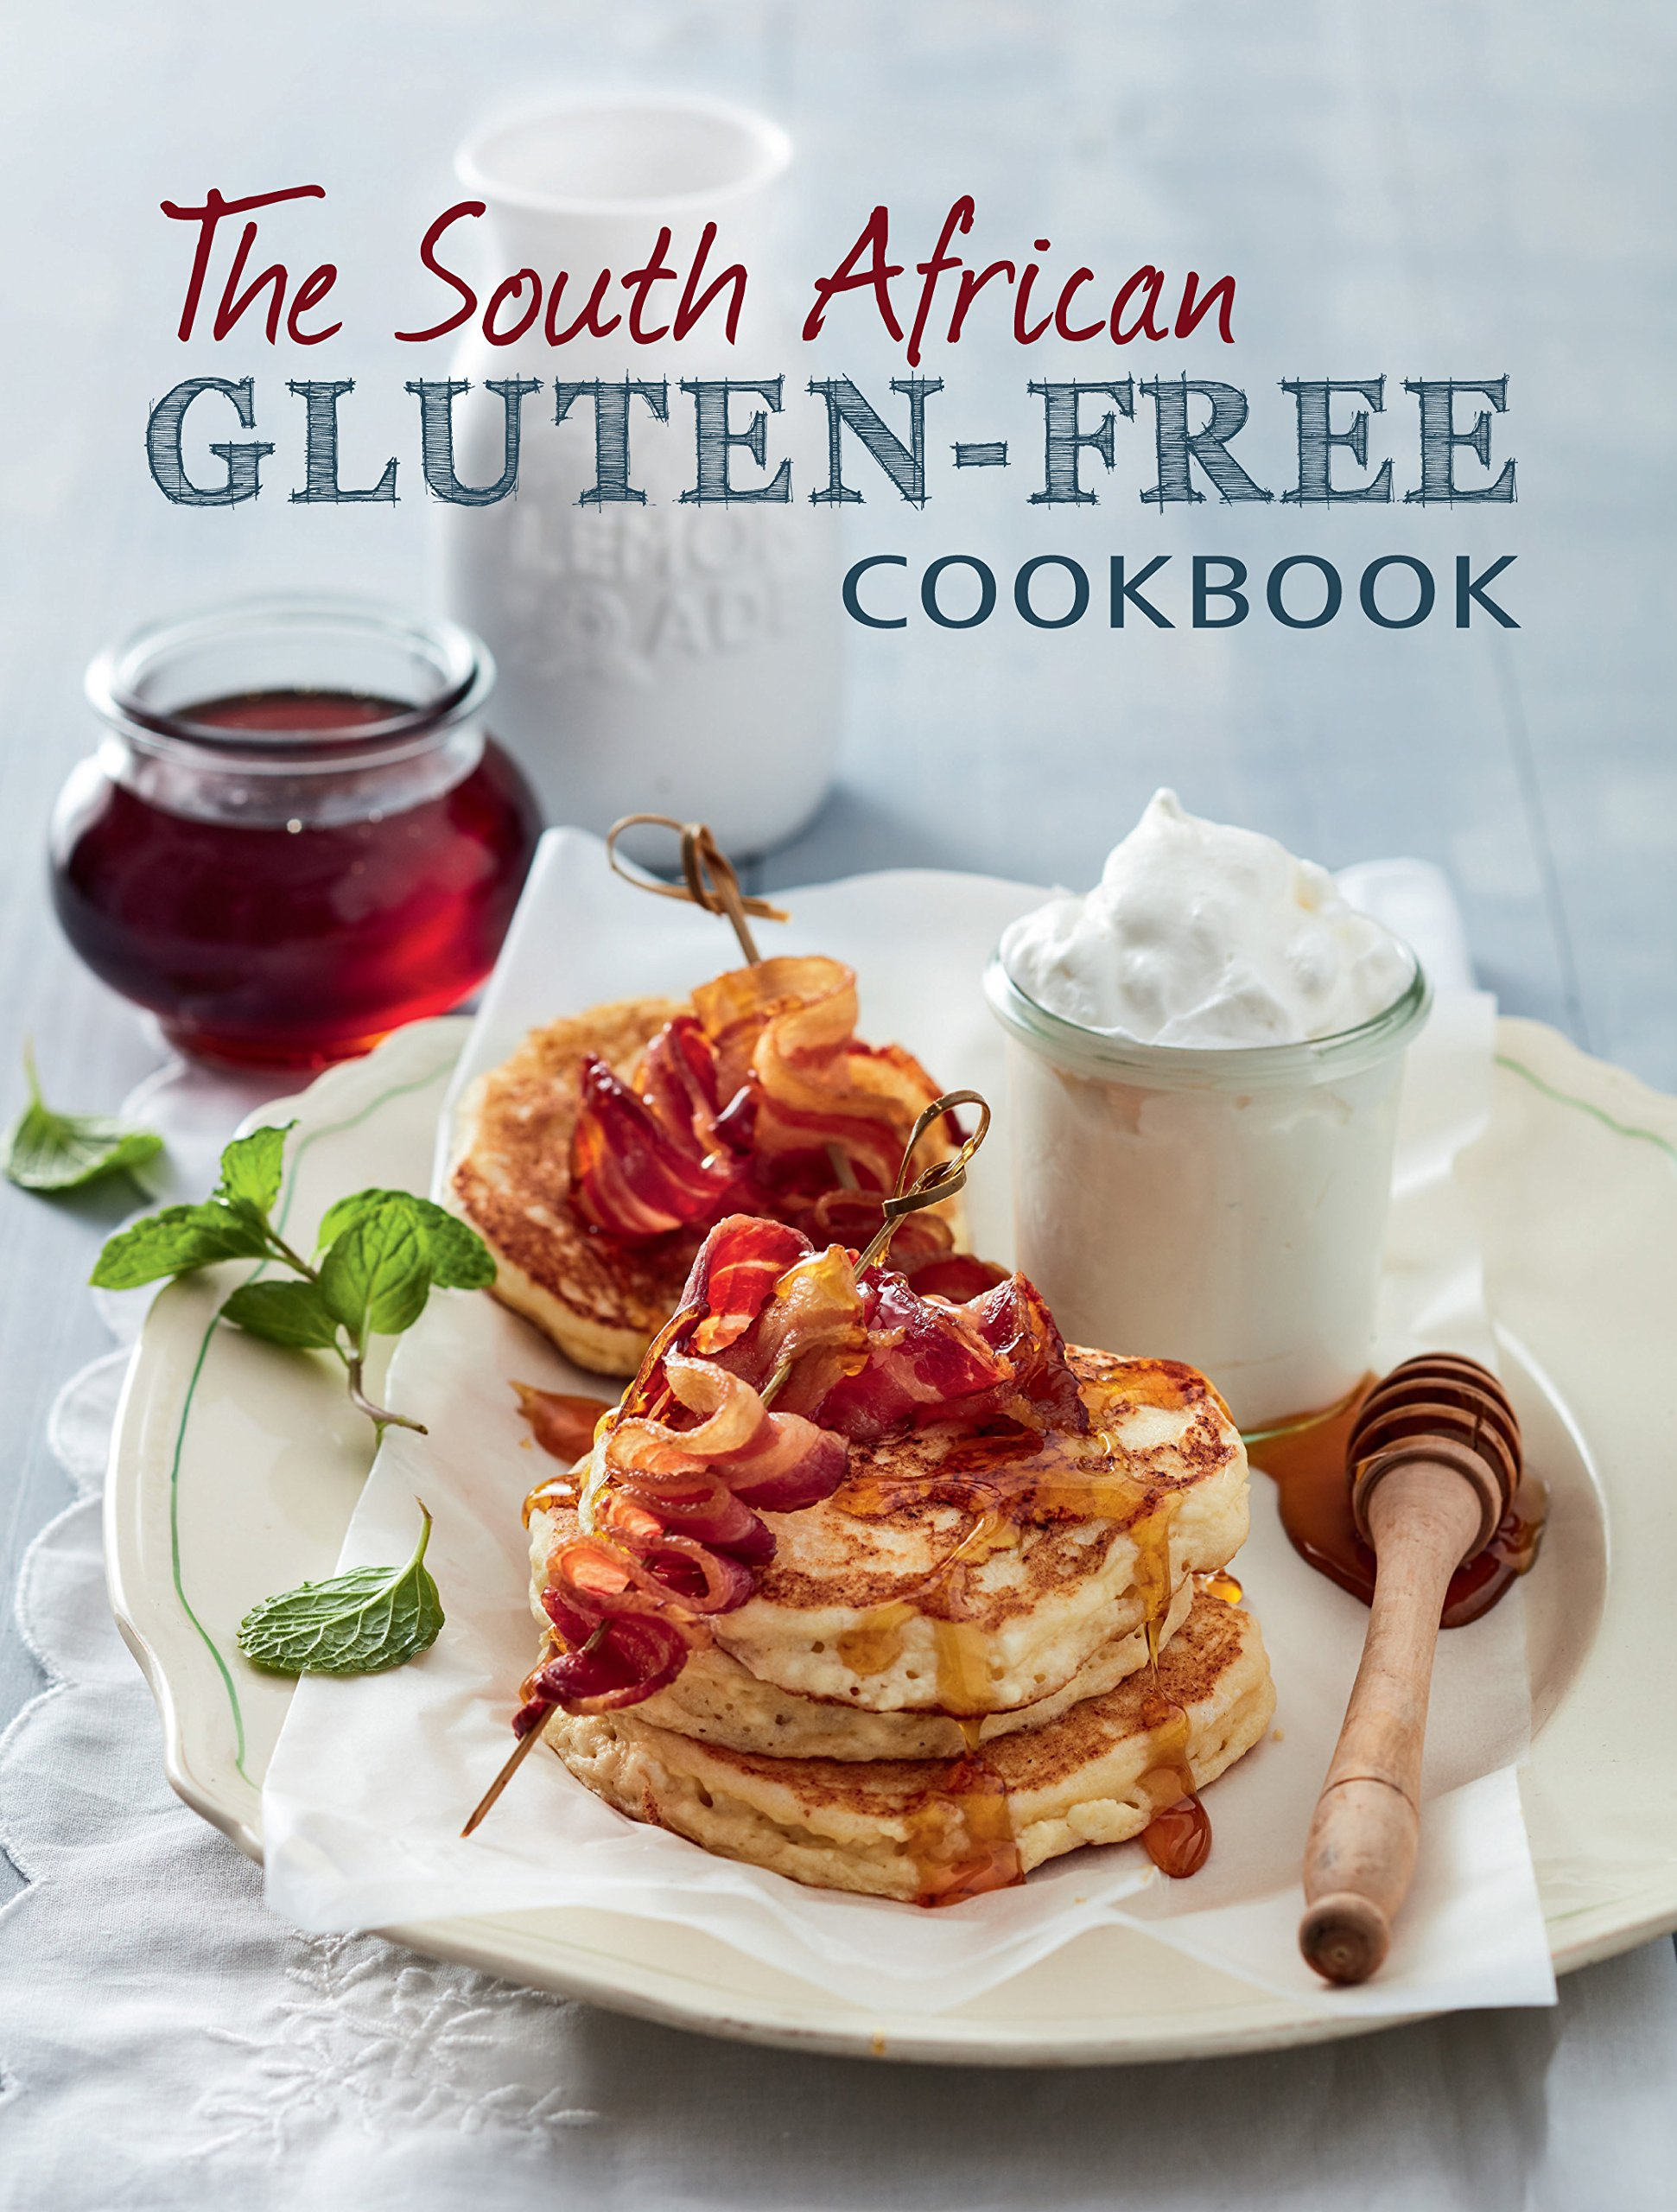 The South African Gluten-free Cookbook Paperback – December 12, 2017